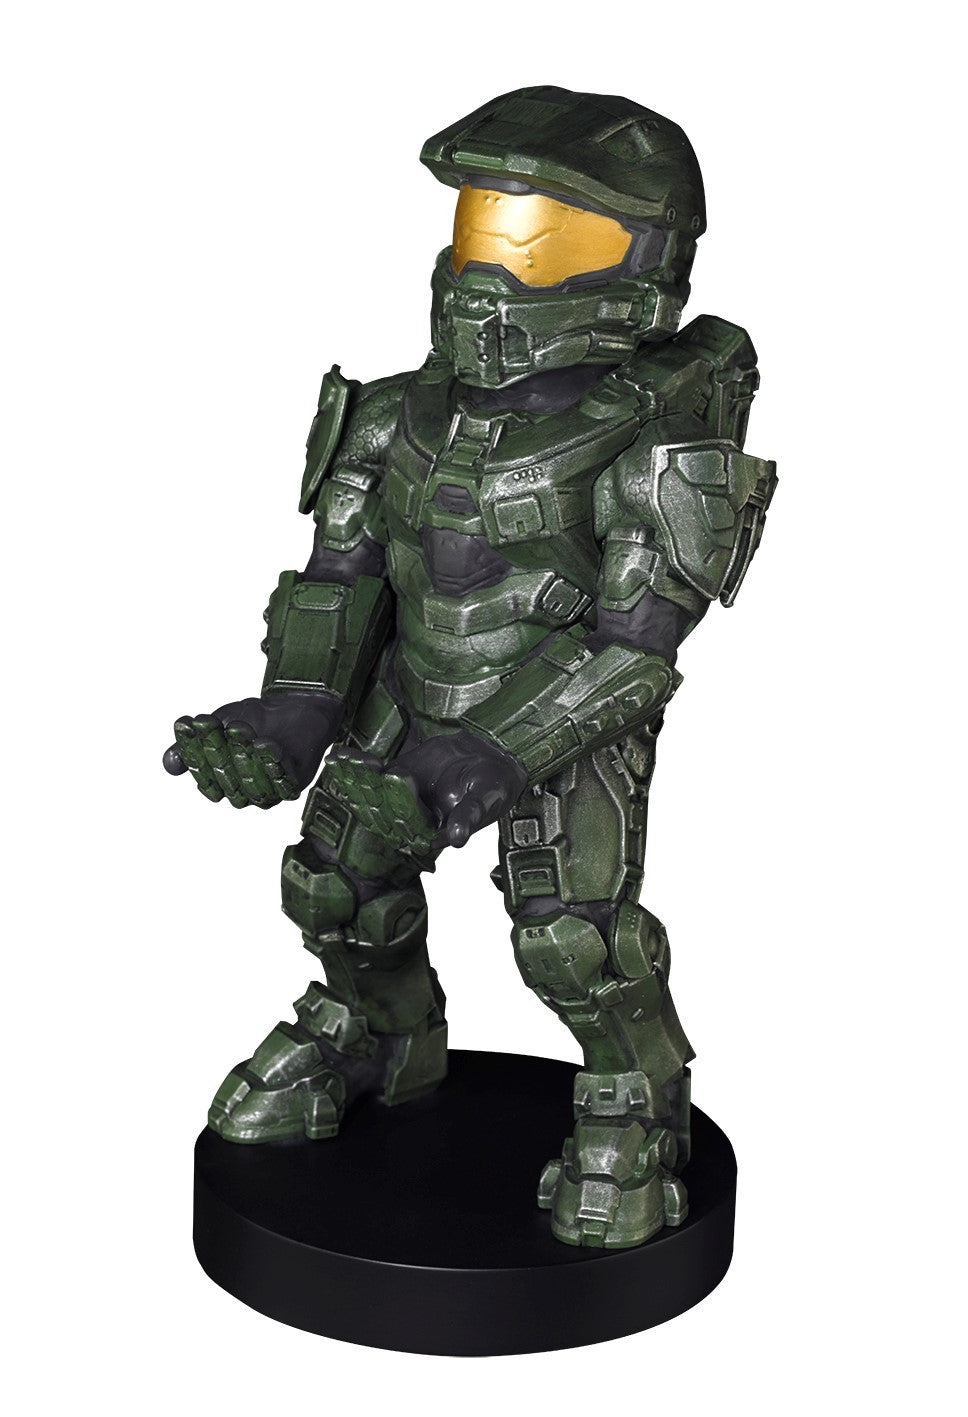 Cable Guy Controller Holder - Master Chief - Xbox One